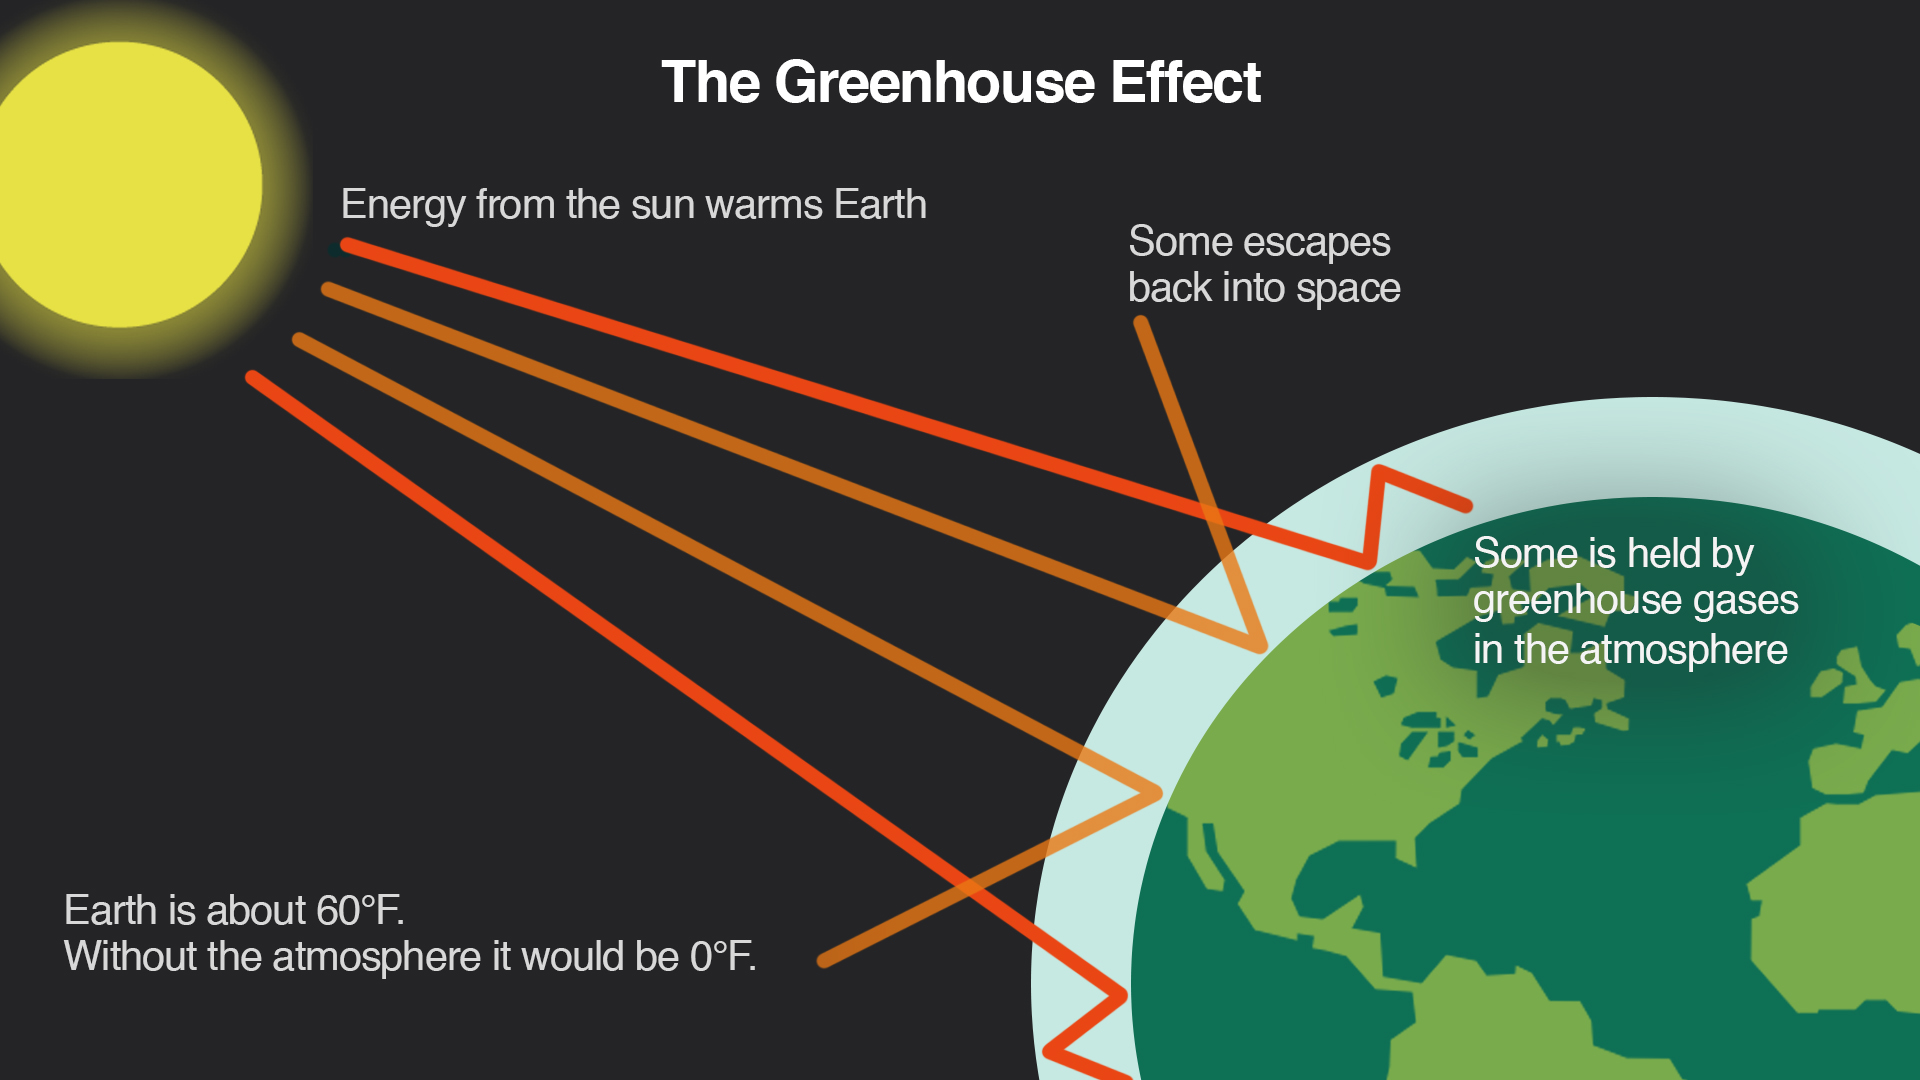 Greenhouse gas effect infographic.